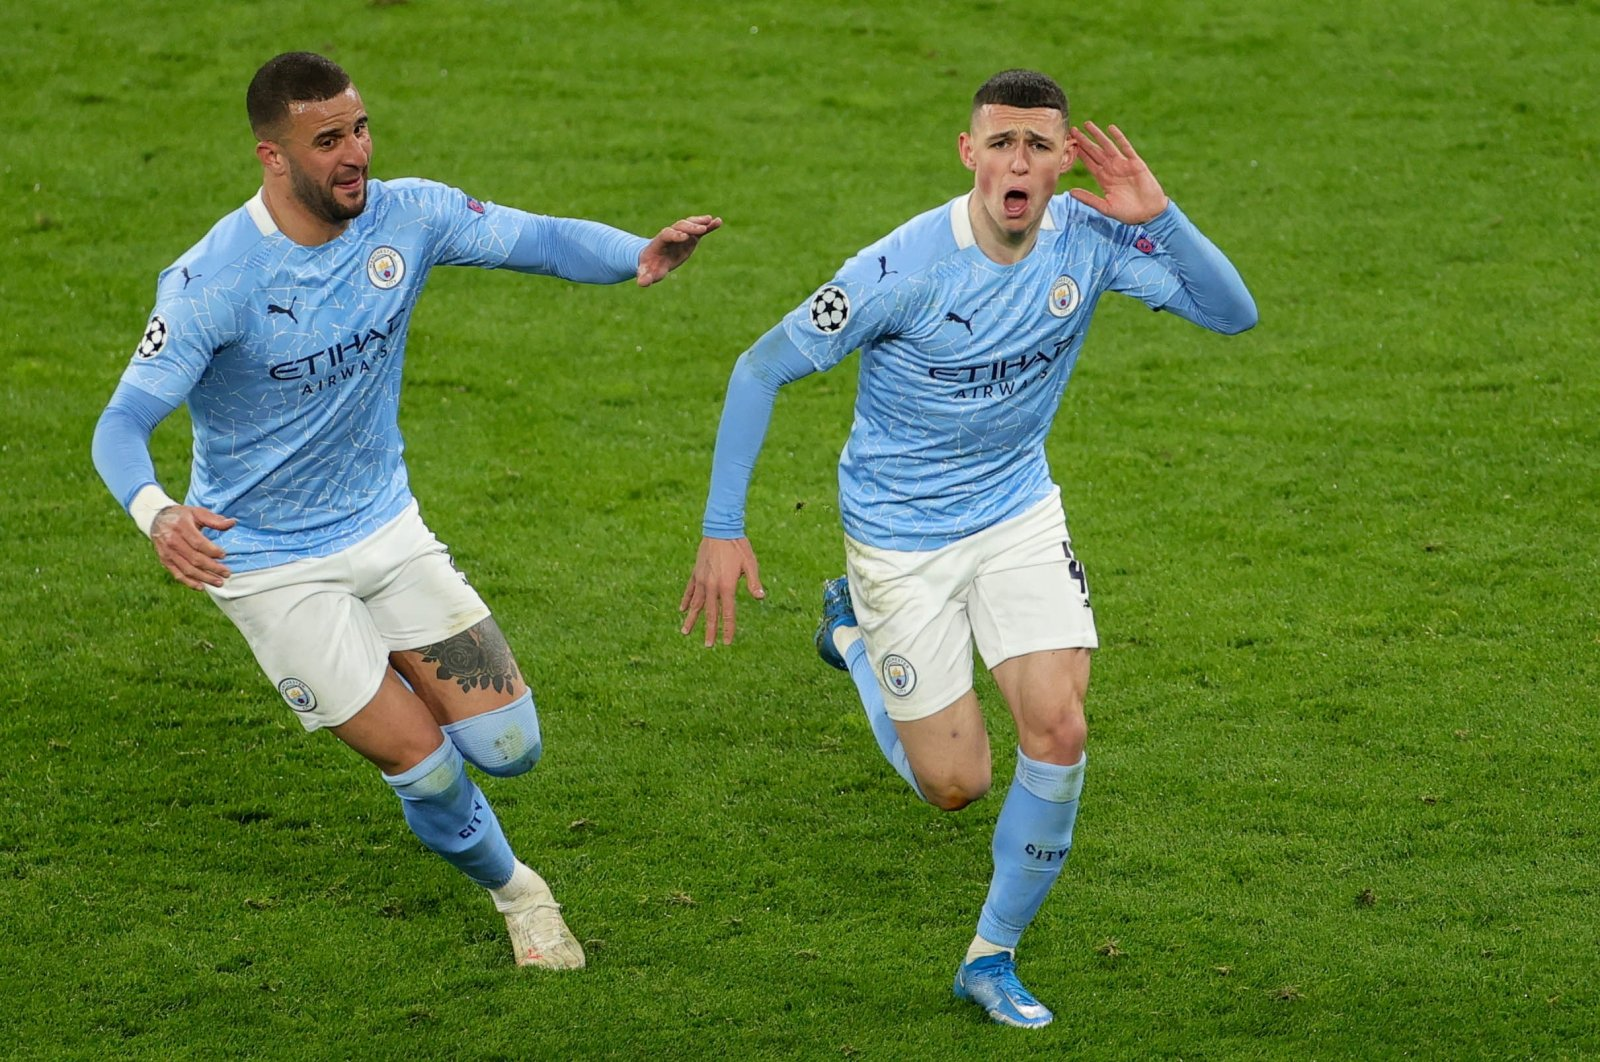 Manchester City's Phil Foden (R) celebrates with teammate Kyle Walker after scoring against Borussia Dortmund in the UEFA Champions League quarterfinal, second leg match in Dortmund, Germany, April 14, 2021. (EPA Photo)